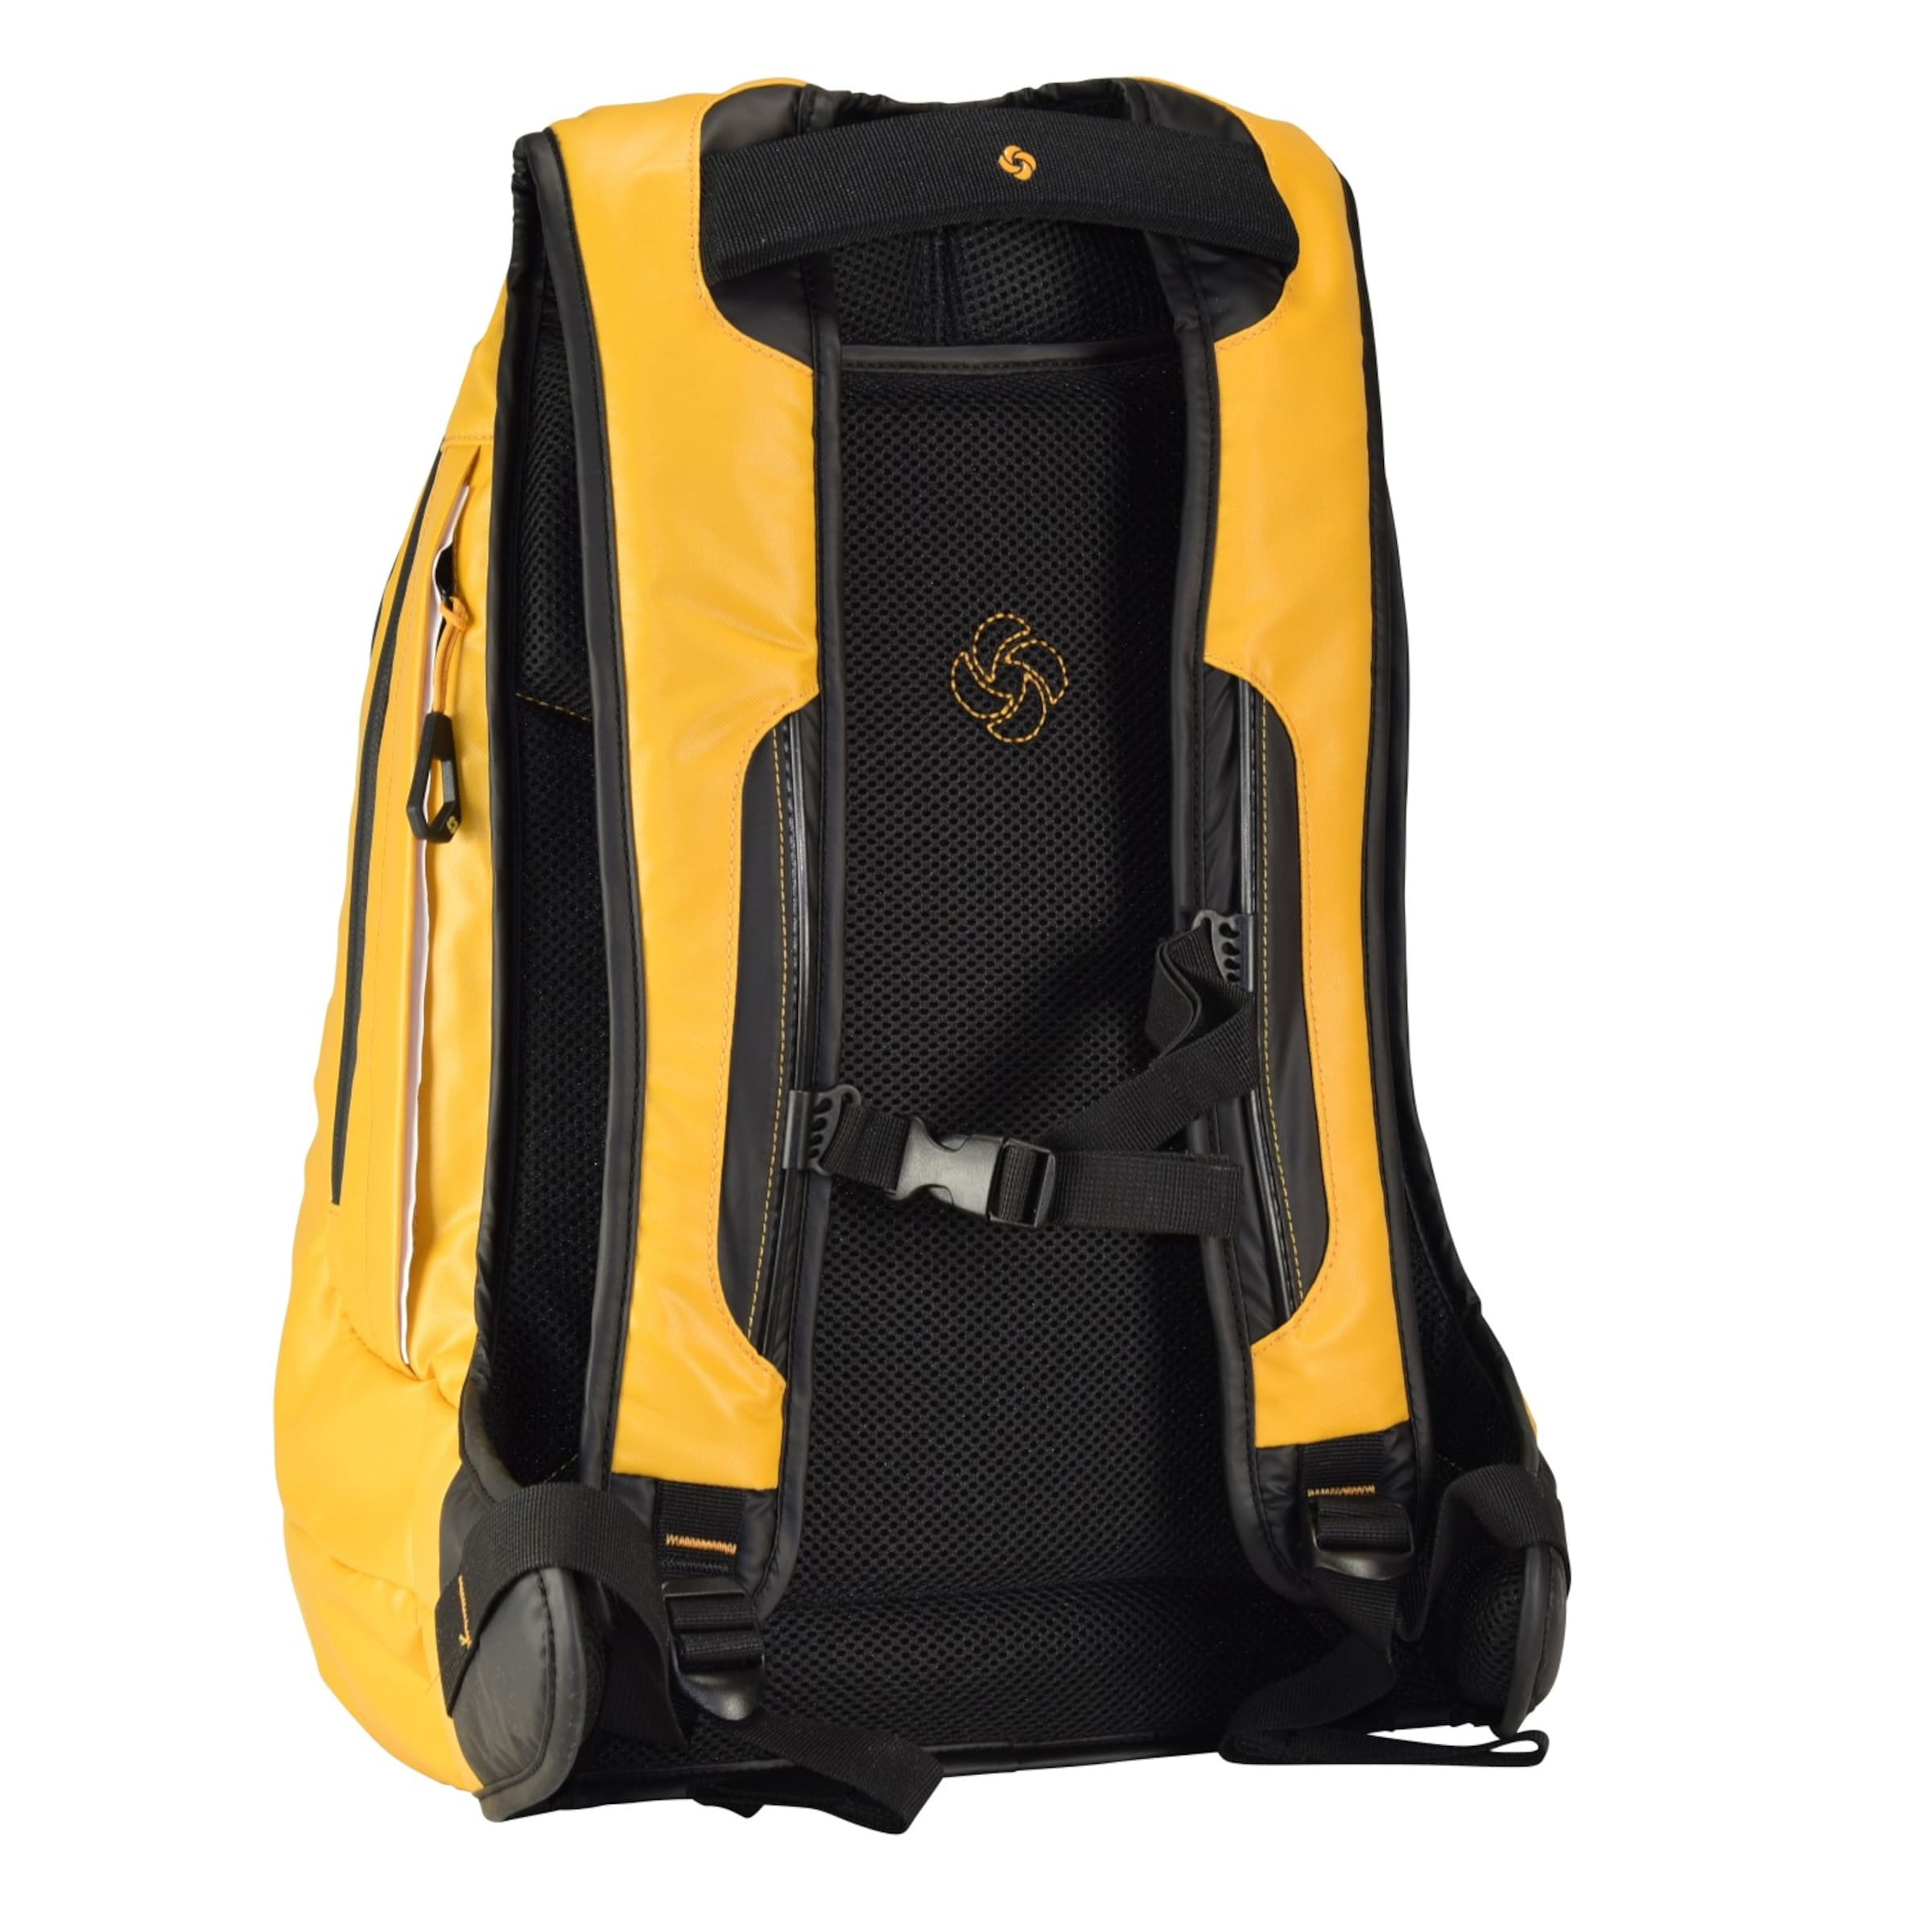 Laptopfach Rucksack In 45 Cm Light GelbSchwarz Samsonite Paradiver rCoedxB